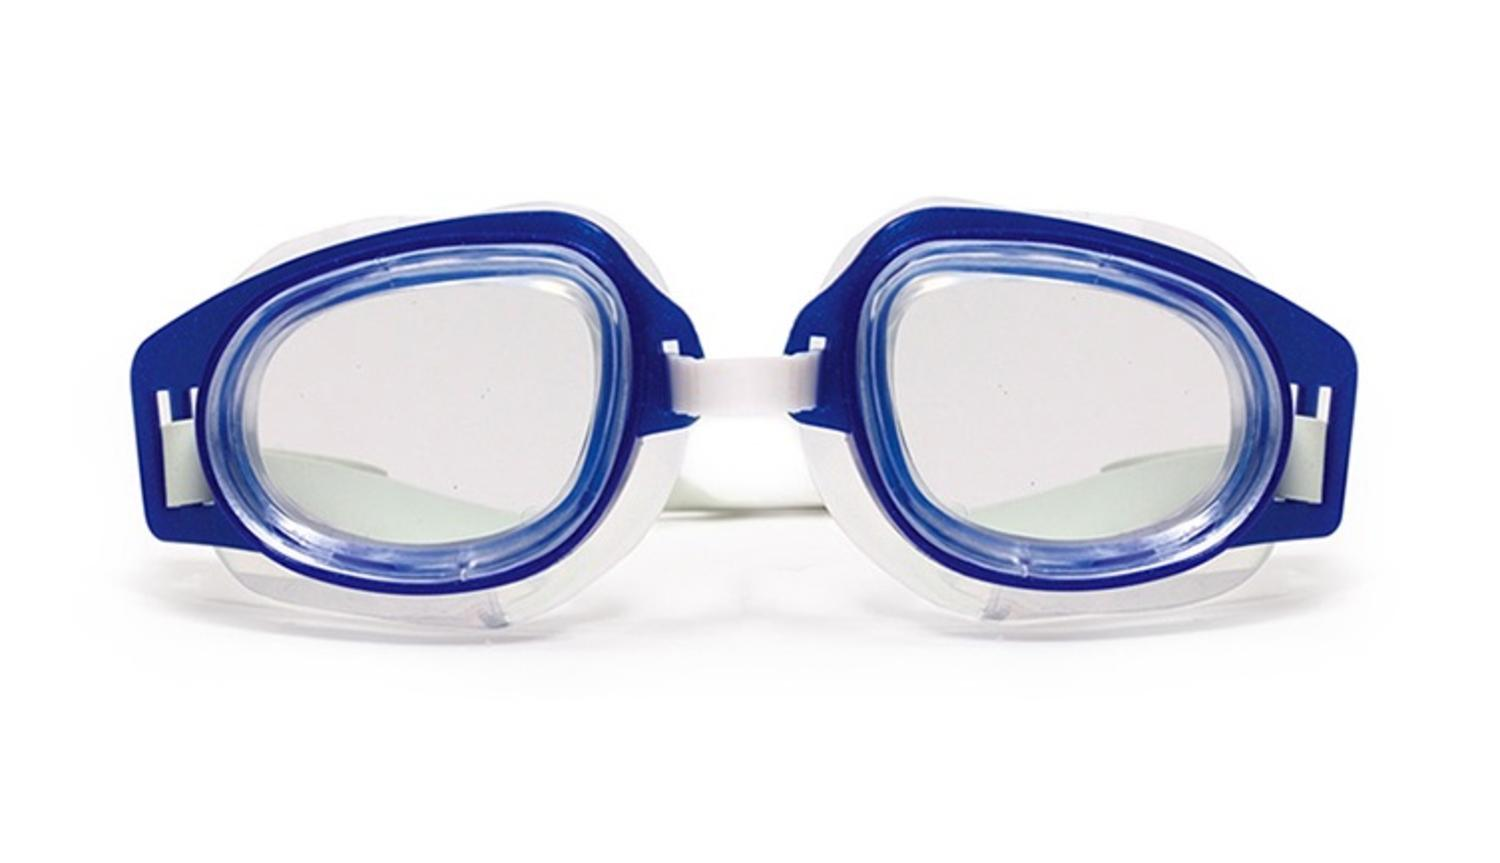 Deluxe Recreational Blue Adjustable Swimming Pool Goggles by Swim Central